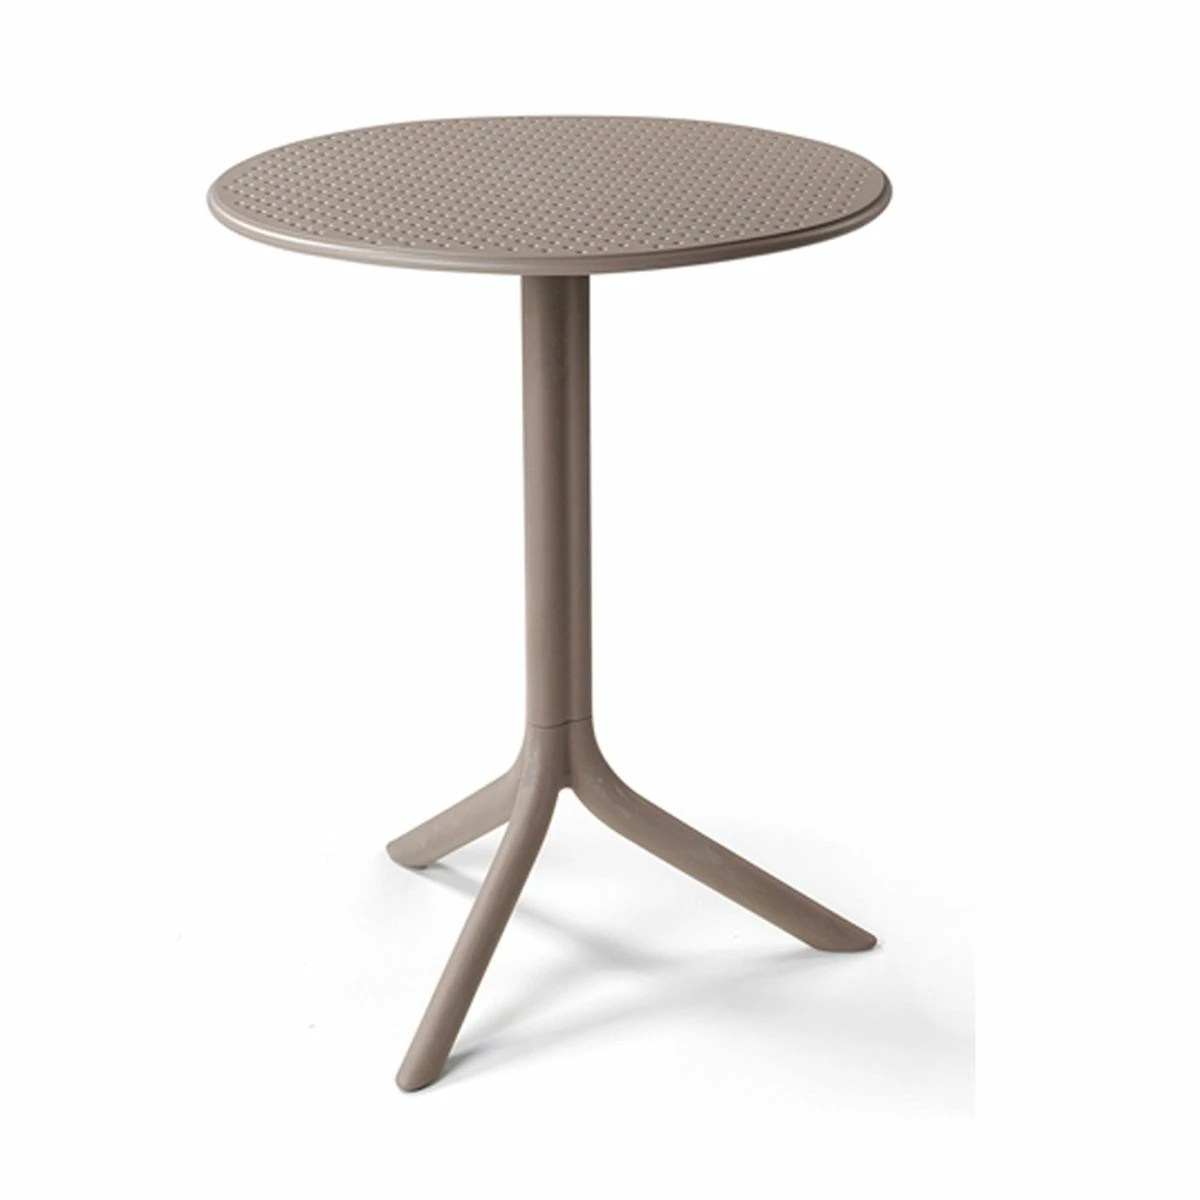 Table Jardin Ronde Table Jardin Ronde Design Nardi Step 60 Cm Zendart Design